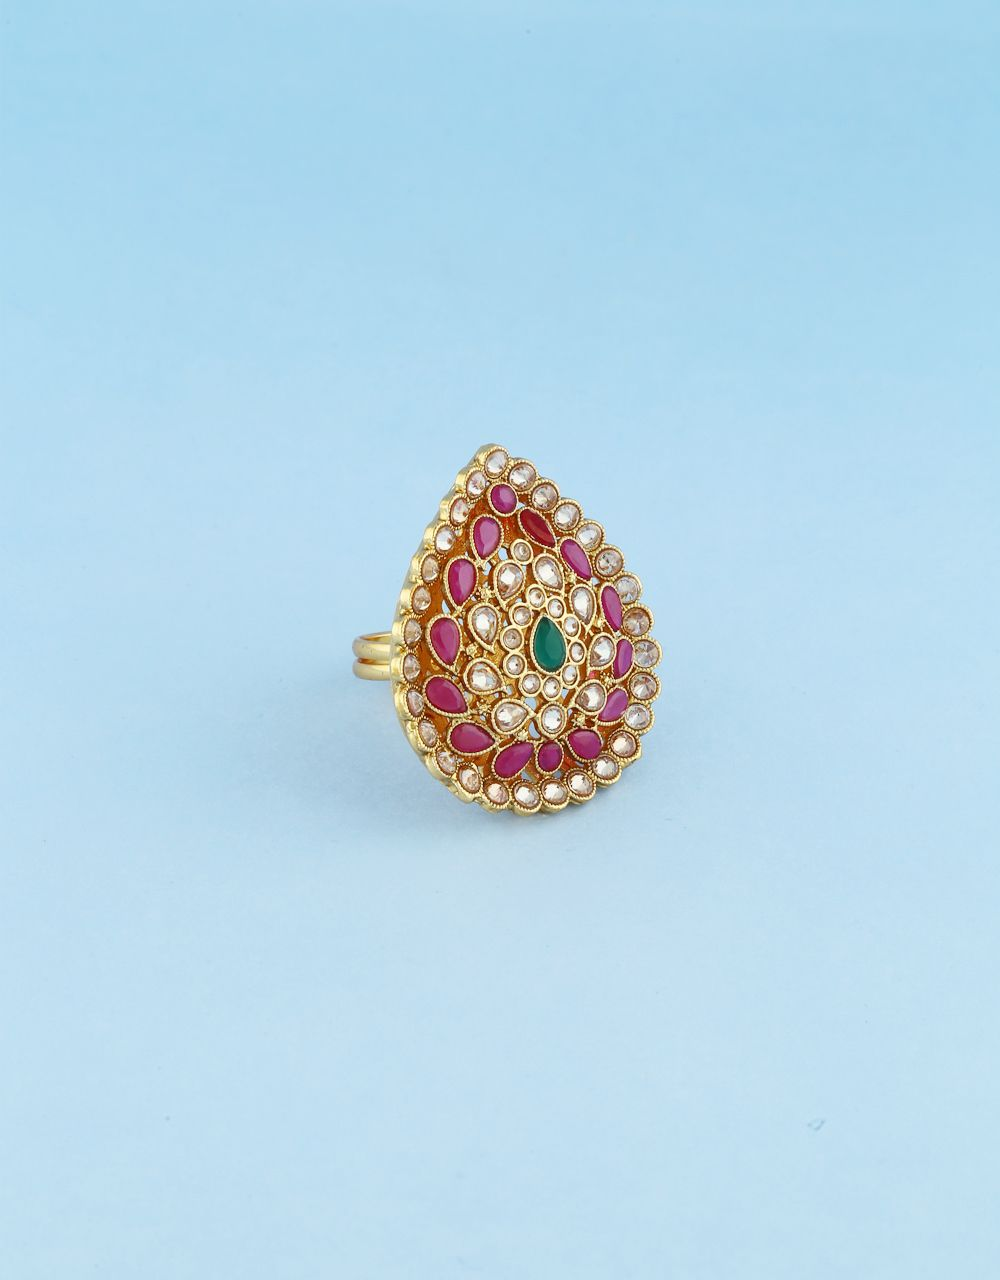 Buy ring design for girls at affordable price from Anuradha Art Jewellery